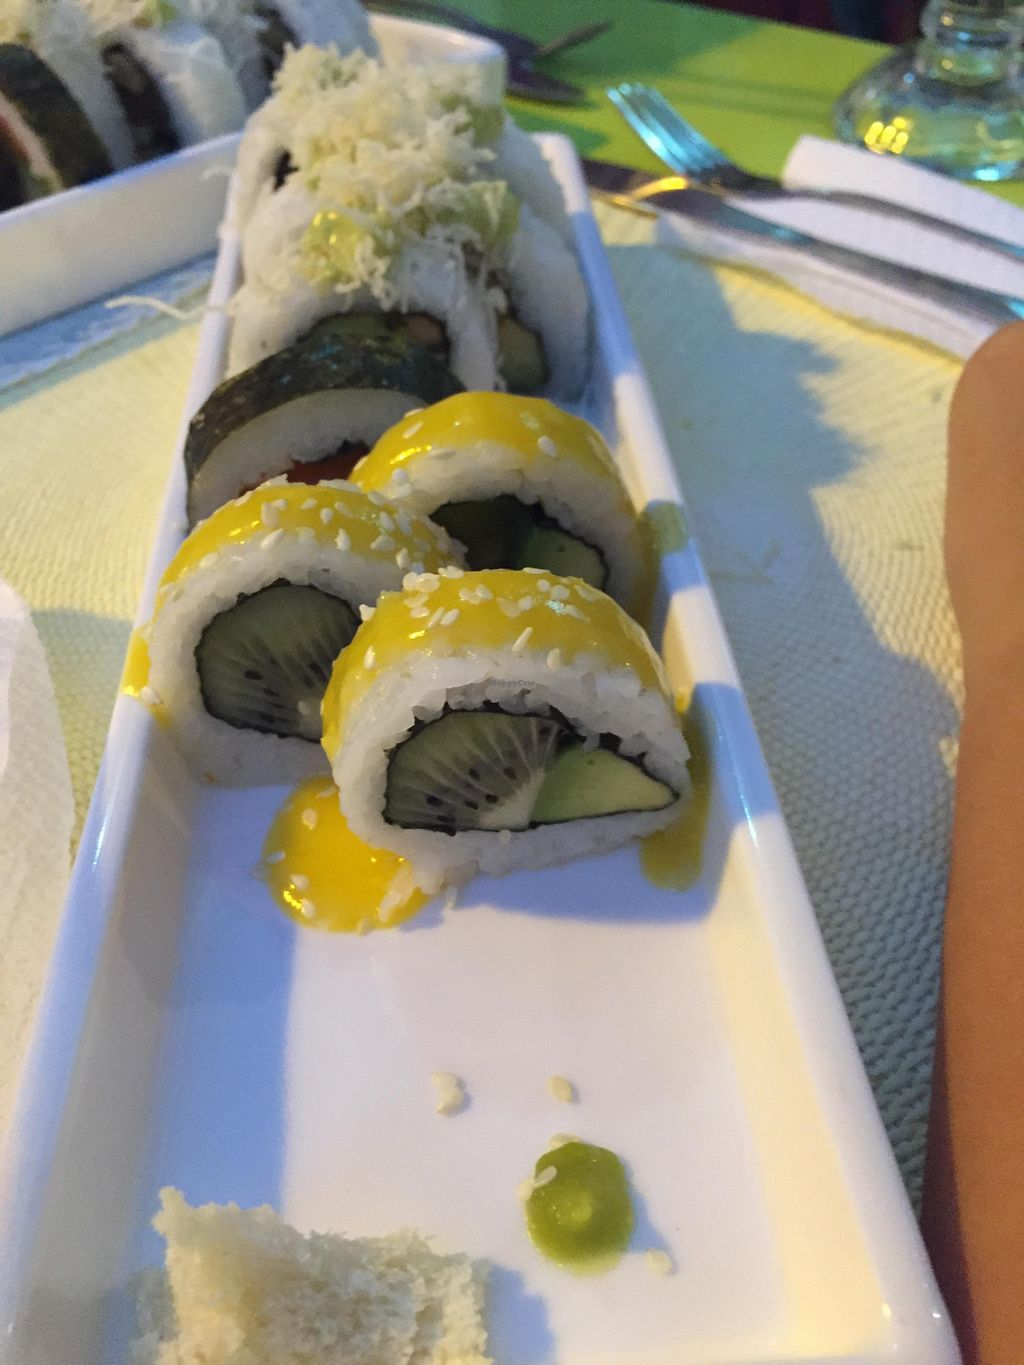 """Photo of CLOSED: Didi Cafe  by <a href=""""/members/profile/wooly"""">wooly</a> <br/>This is the delicious 'sushi' <br/> August 6, 2015  - <a href='/contact/abuse/image/61120/112533'>Report</a>"""